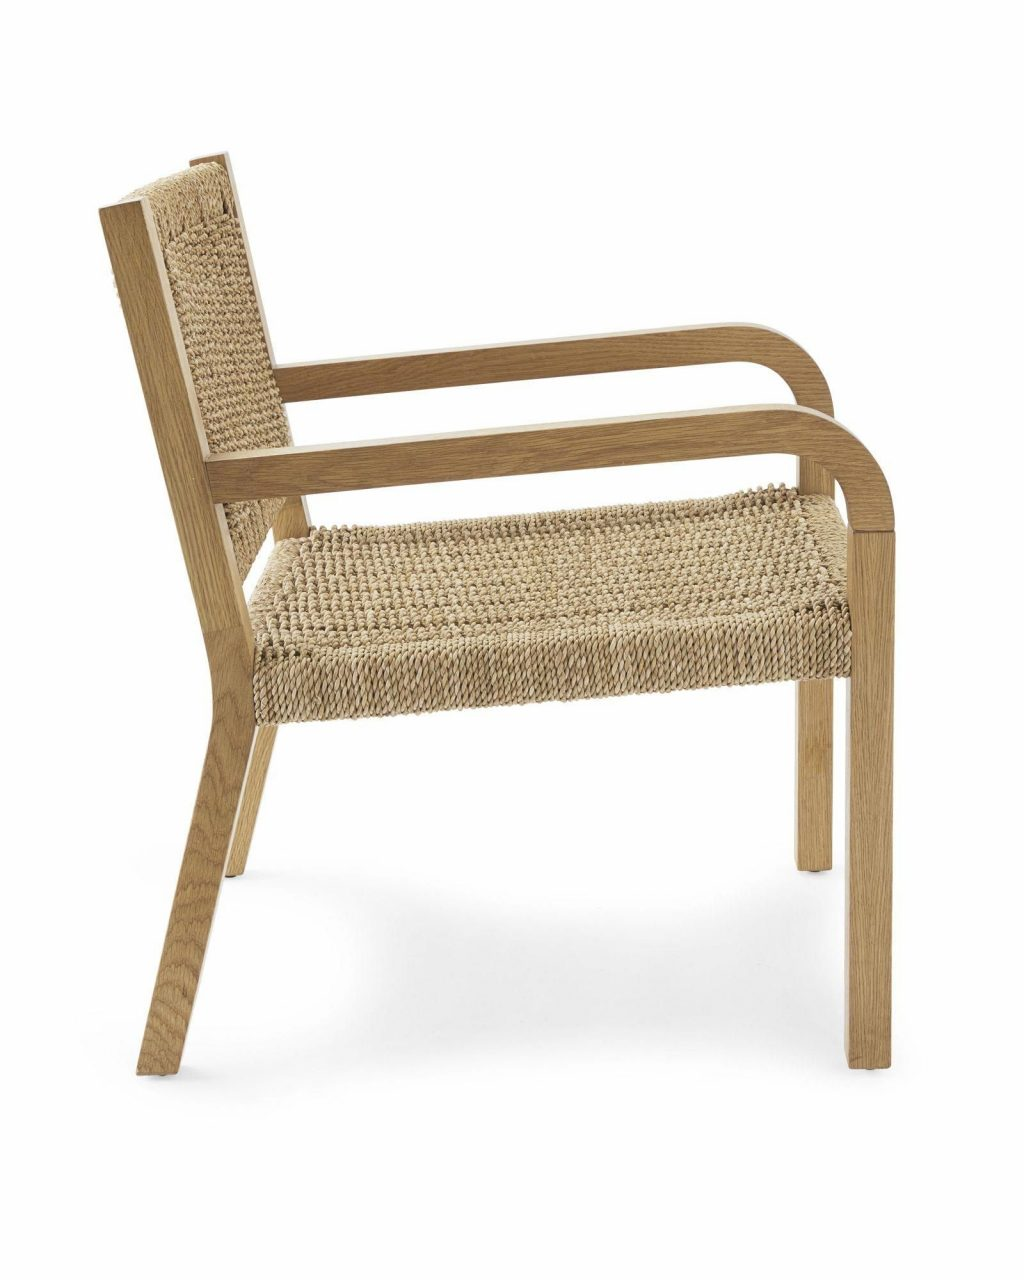 Portland Rope Chairportland Rope Chair Adirondackchairs